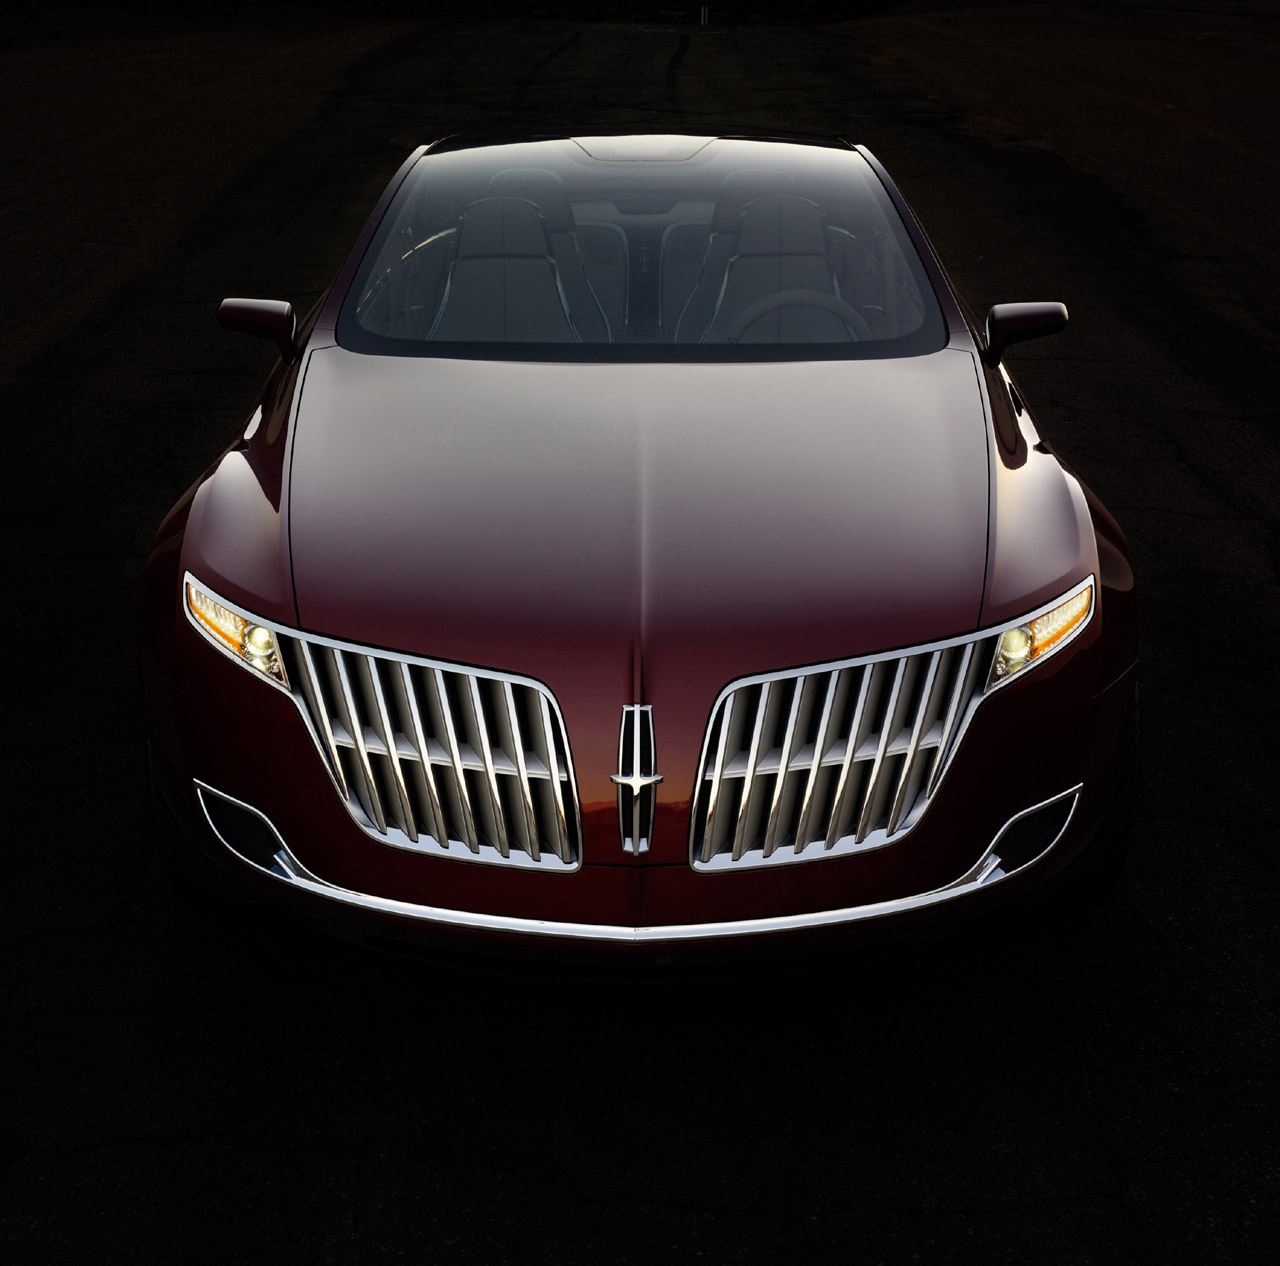 Lincoln MKR Concept Photo Gallery